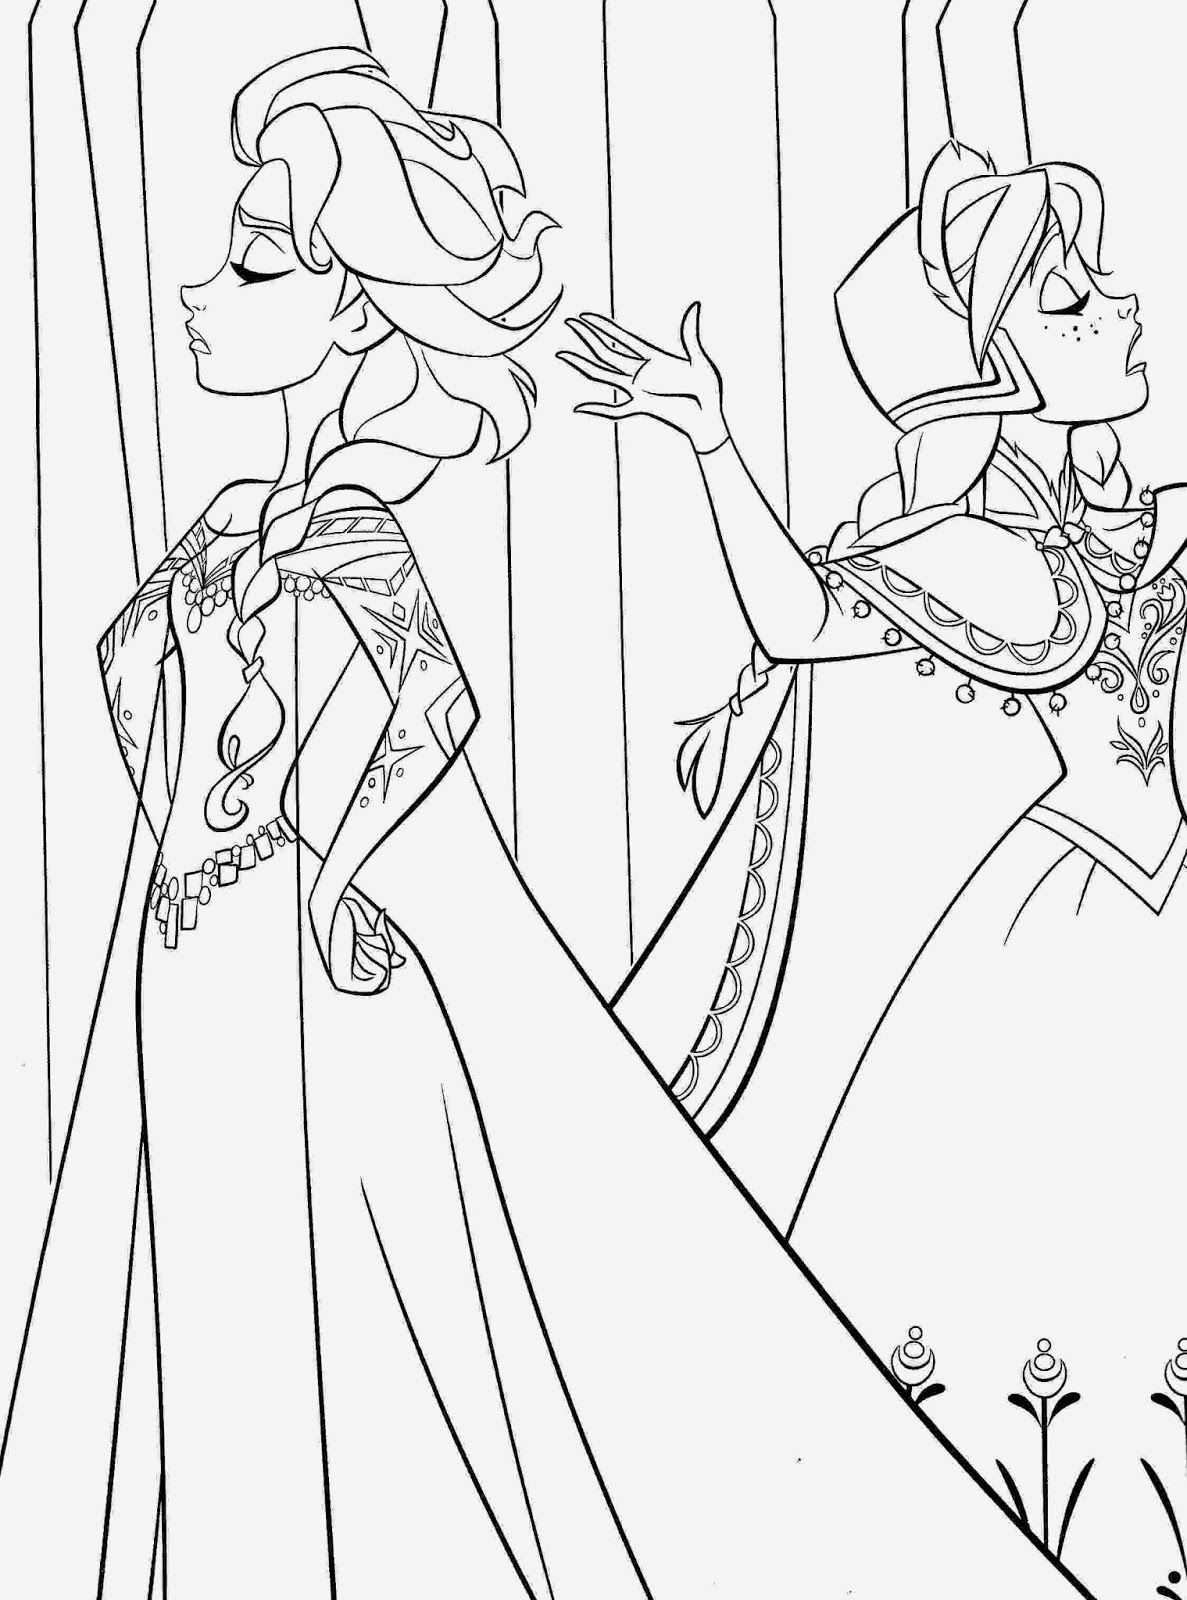 frozen printable coloring pages - Frozen Printable Coloring Pages